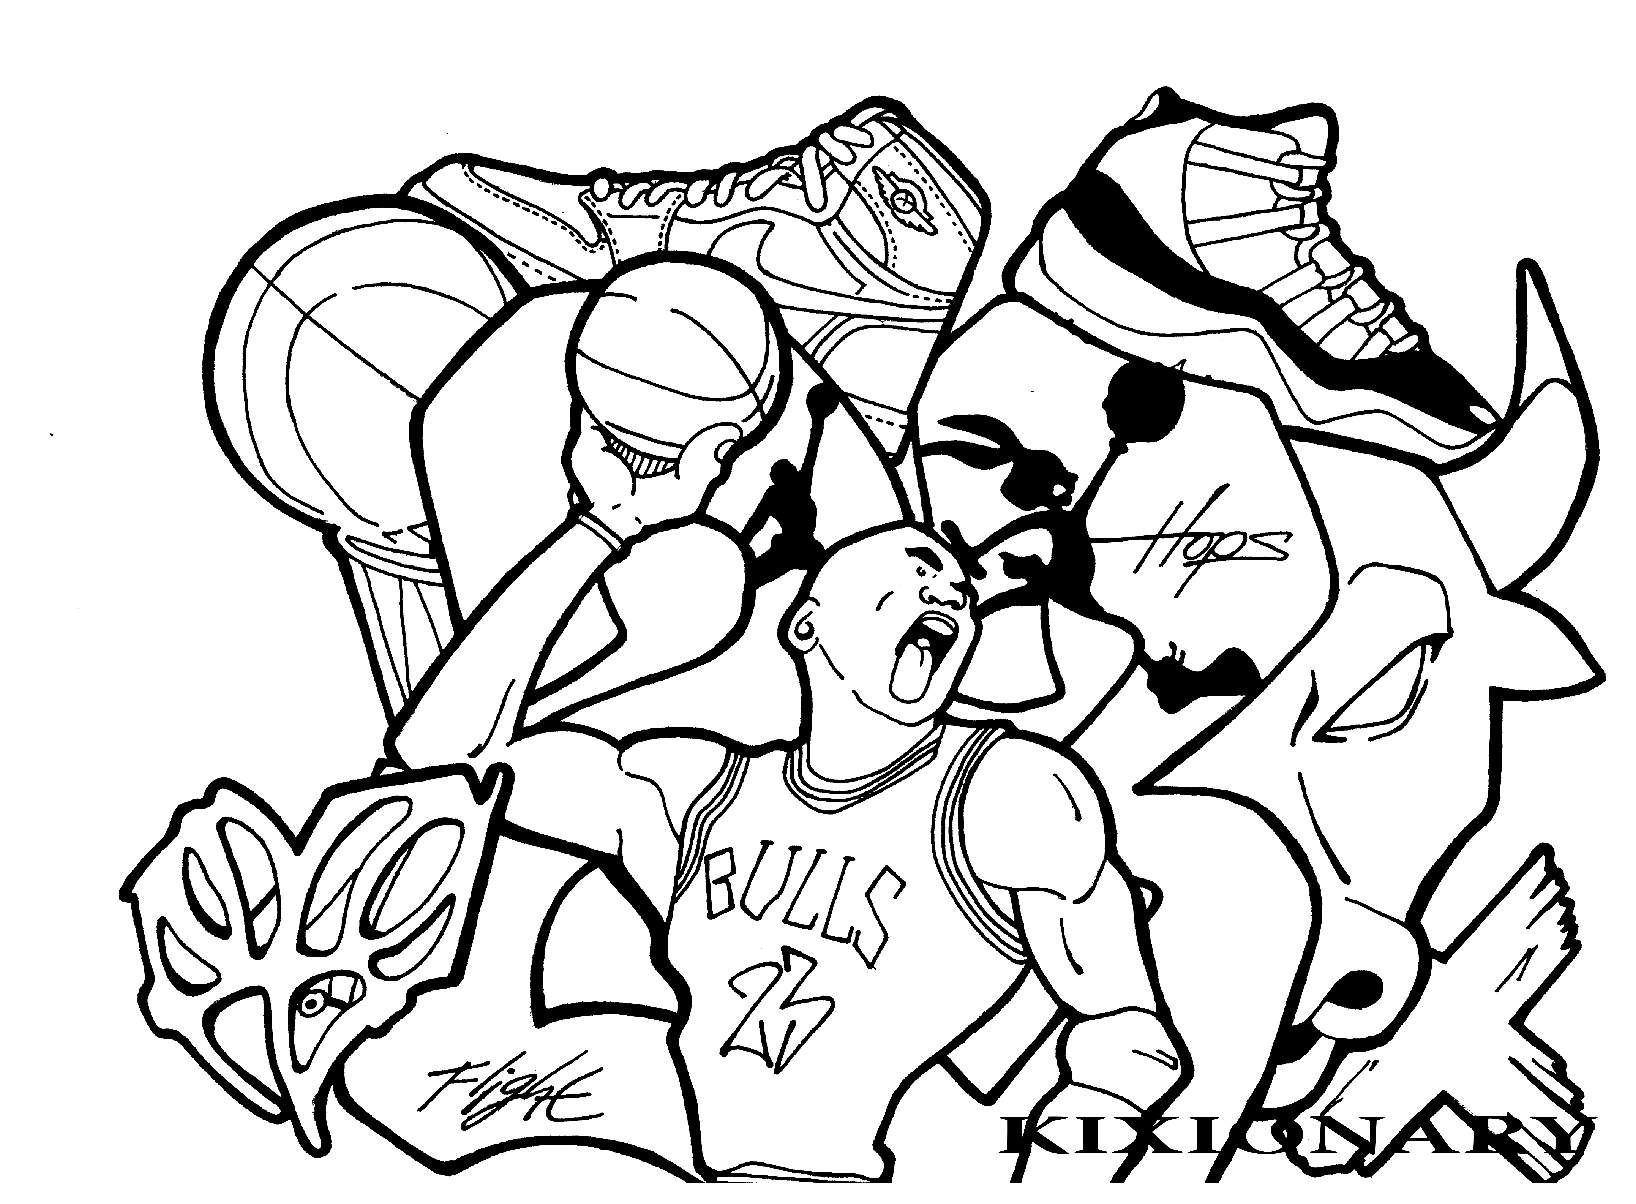 Free Coloring Page Adult Graffiti Michael Jordan By Kixionary